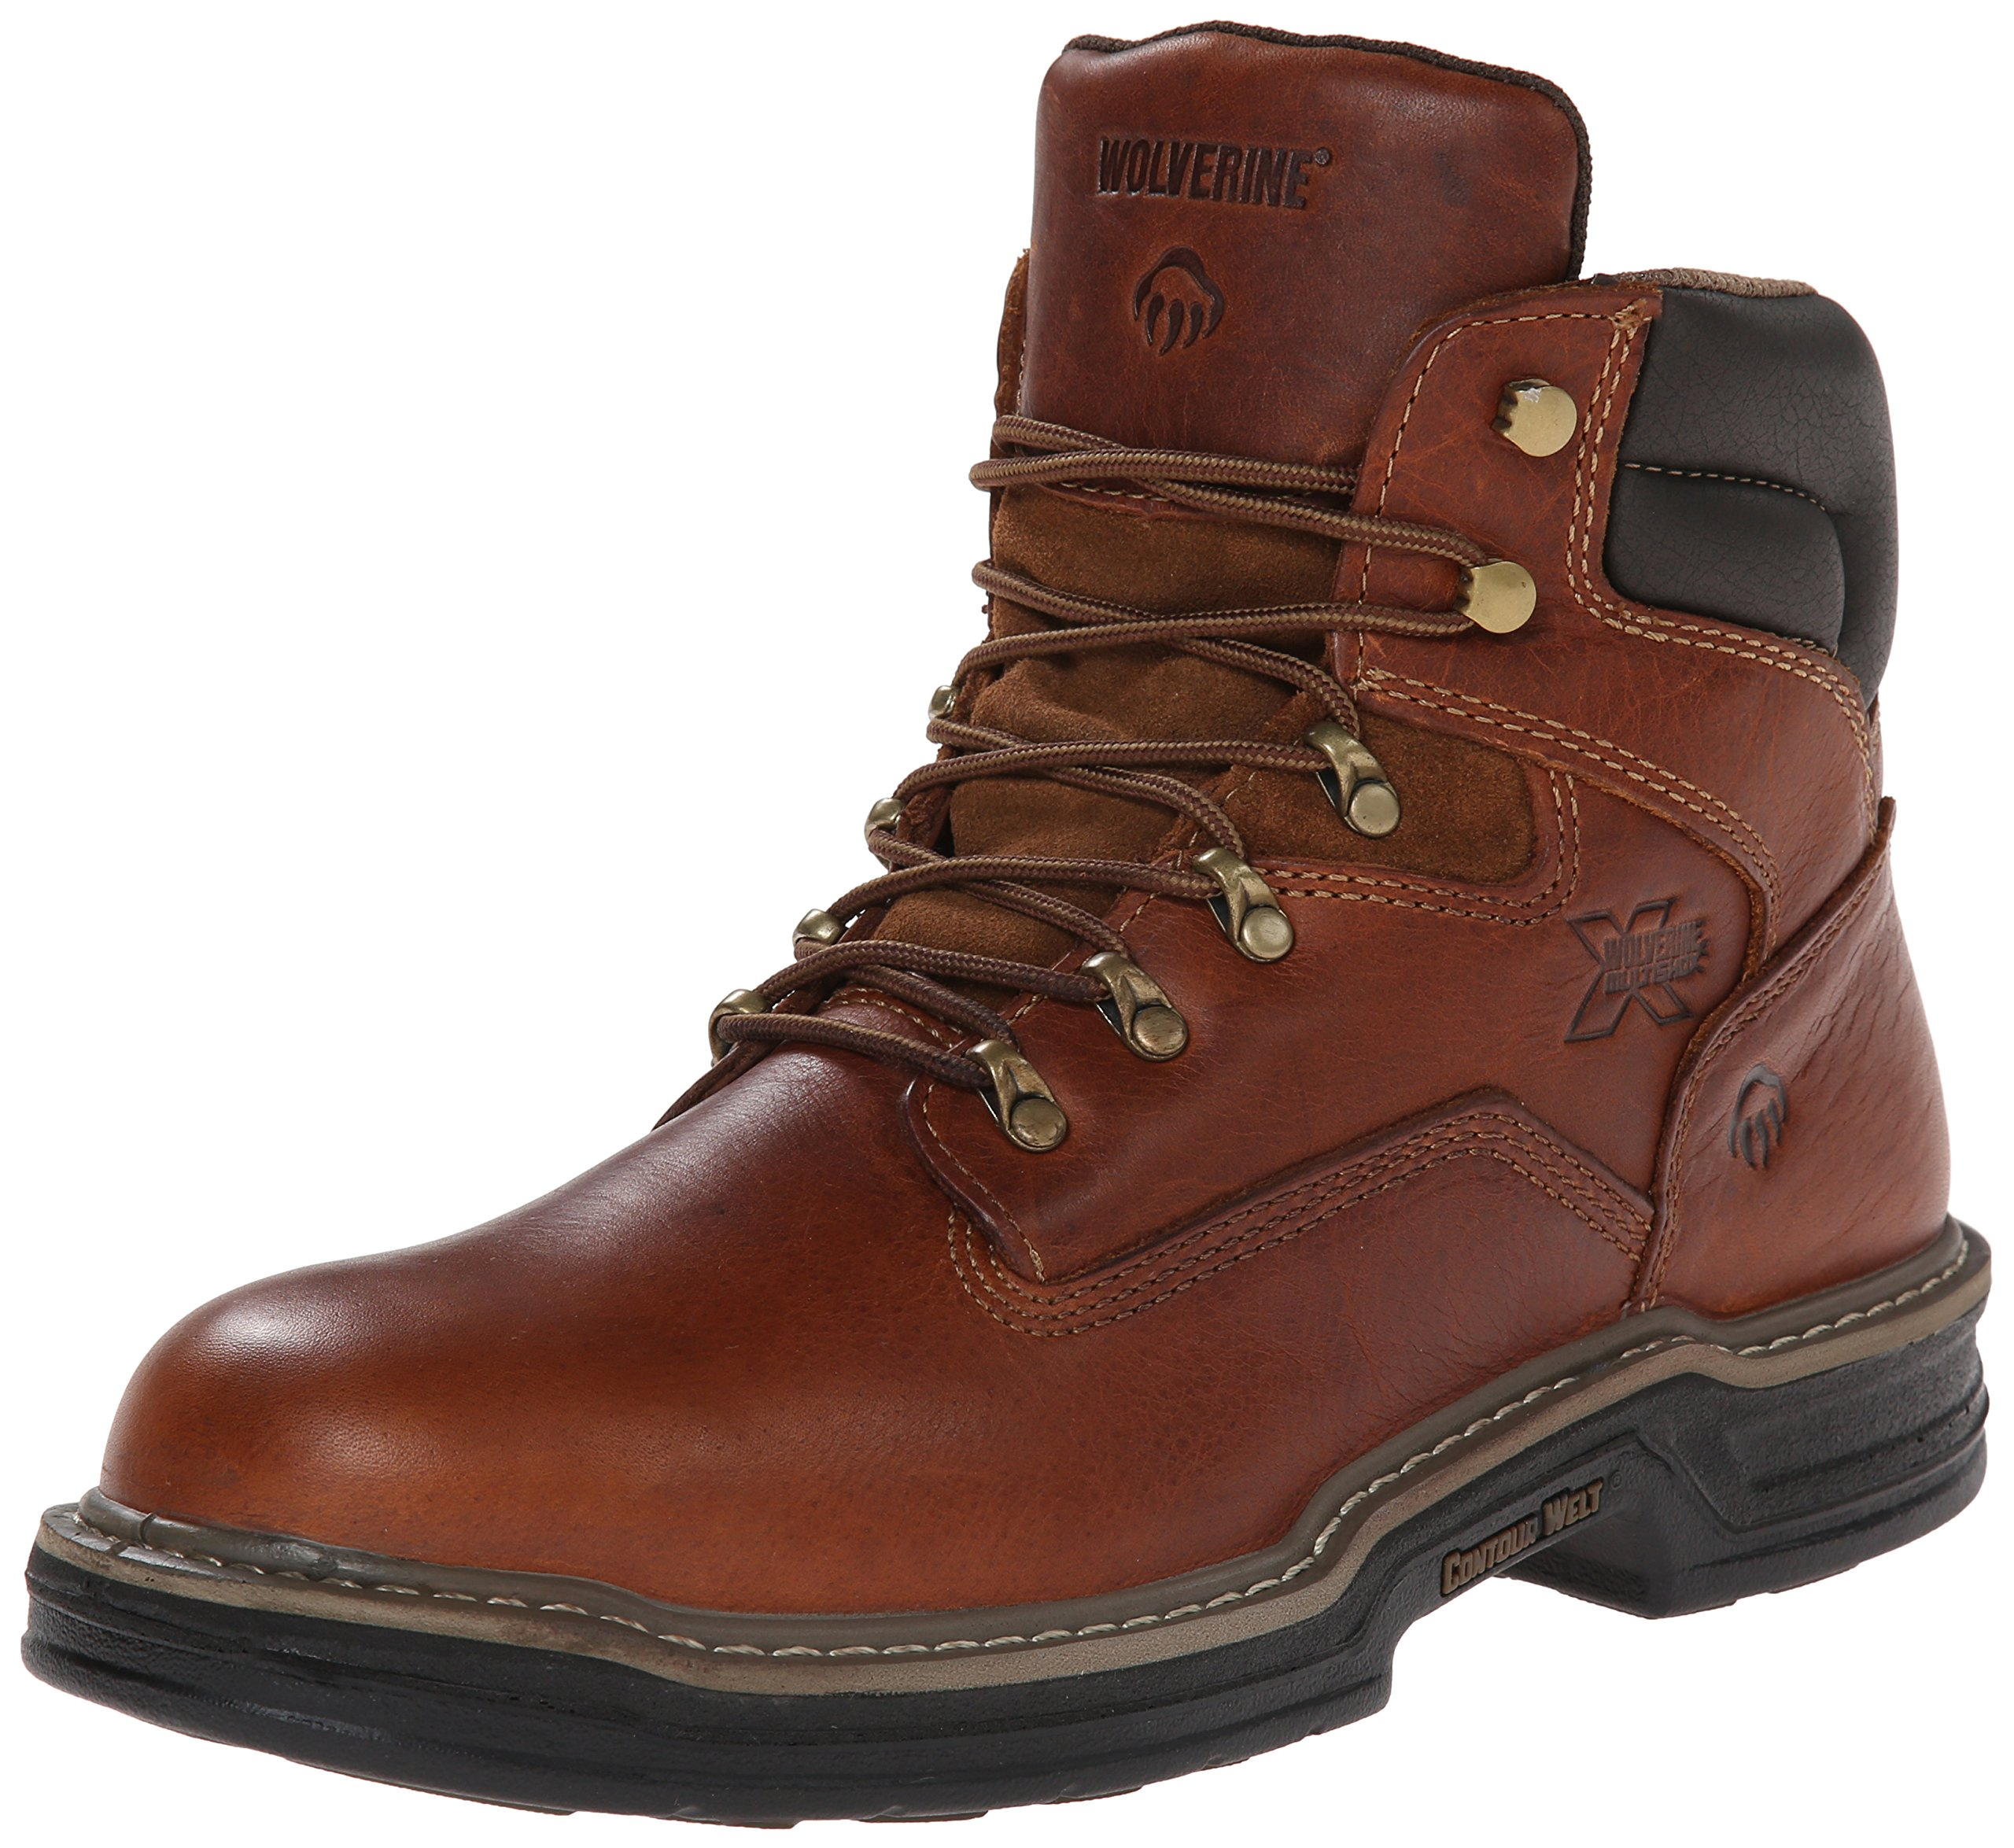 Wolverine Men's W02421 Raider Boot, Brown, 13 XW US